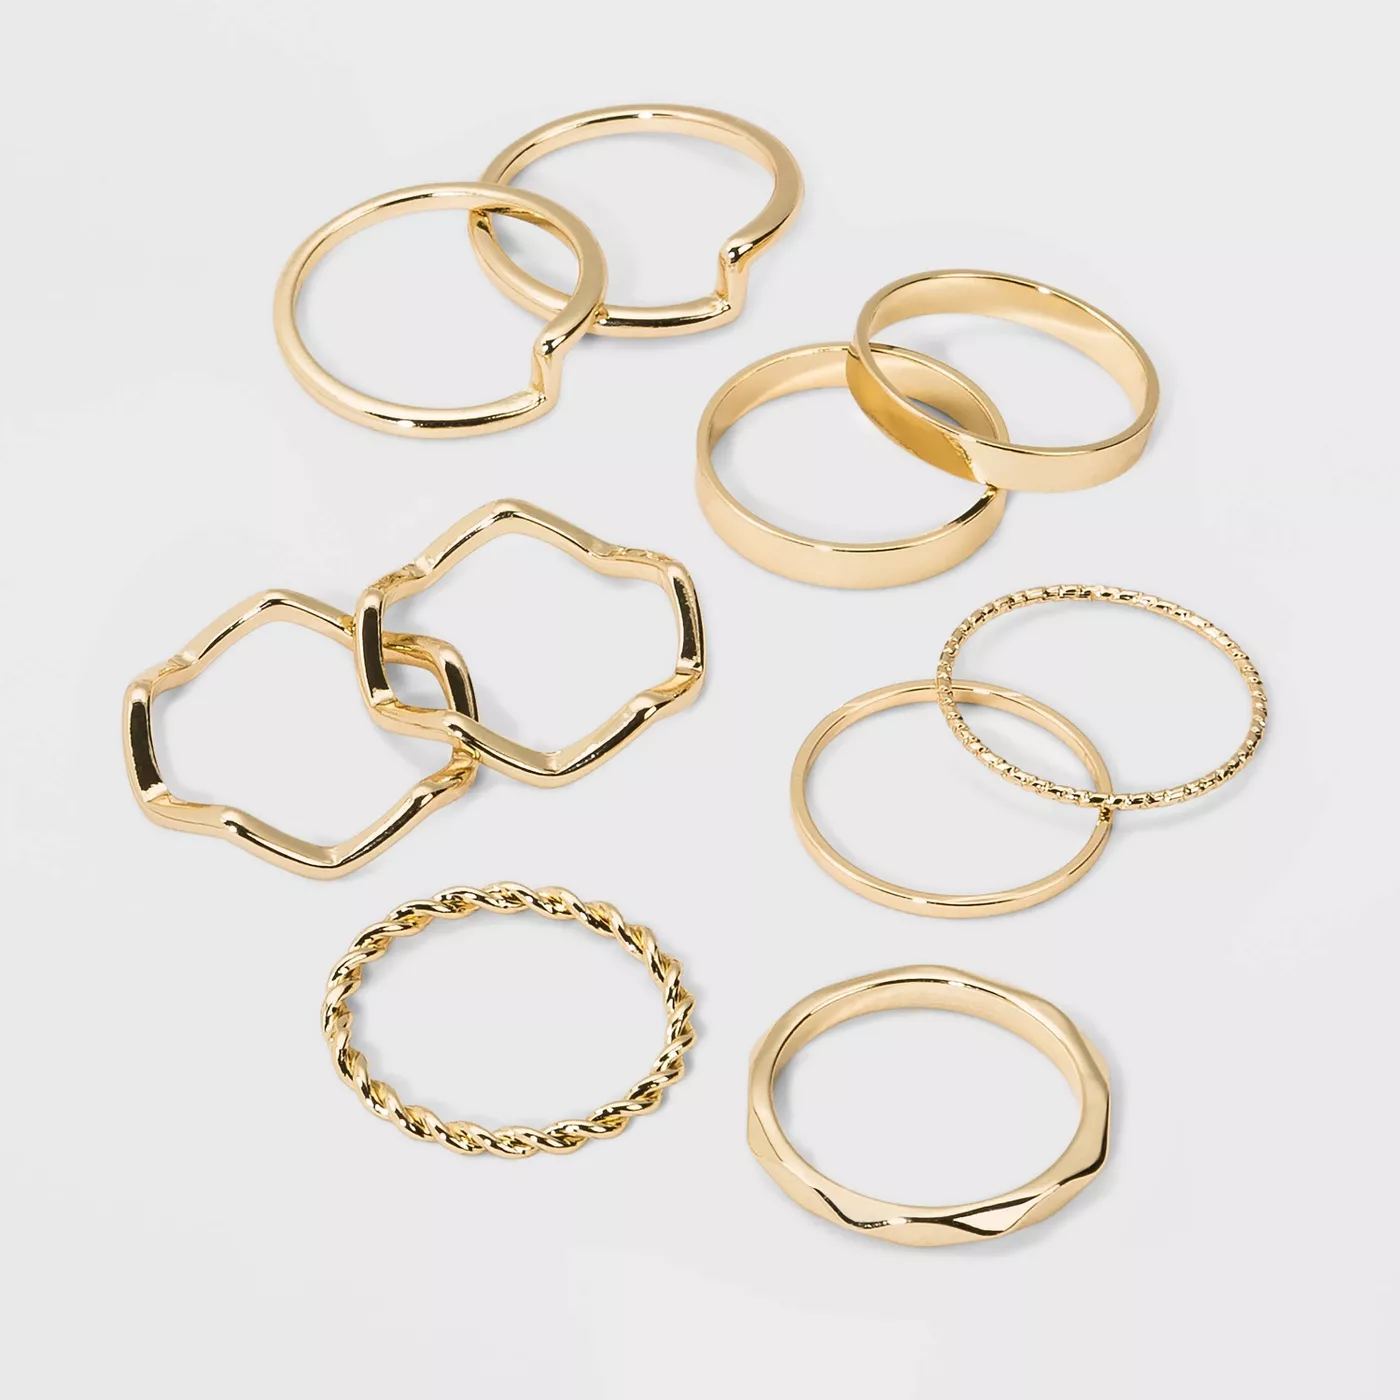 WILD FABLE Casted Metal Multi Ring Set 10pc  Gold